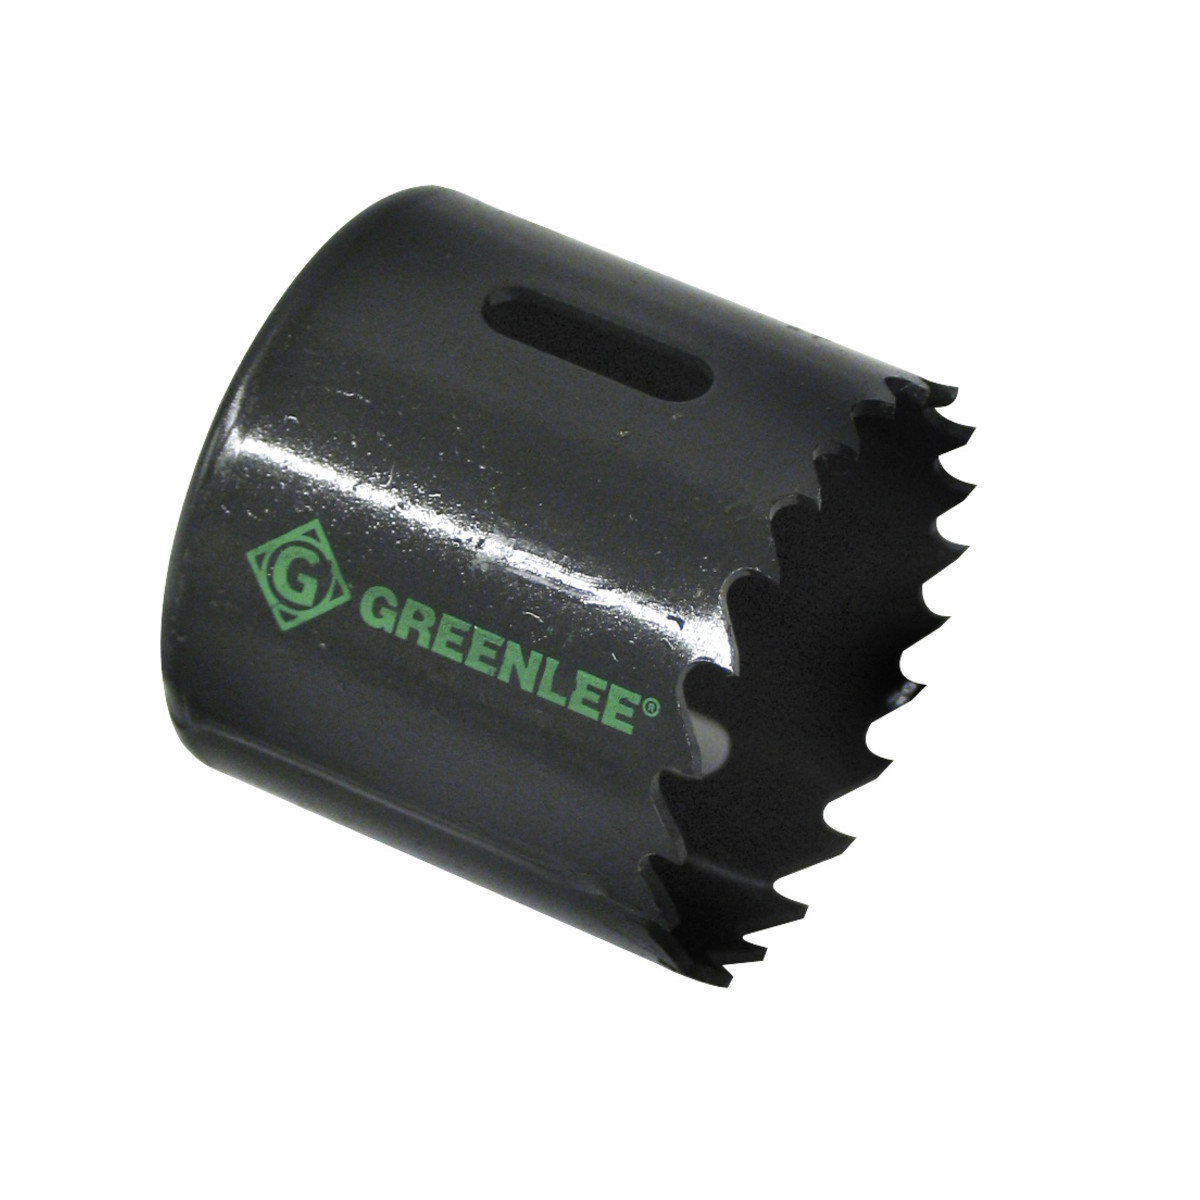 GRE 825-2-IN STD HOLE SAW 1-1/2IN KO CS=25